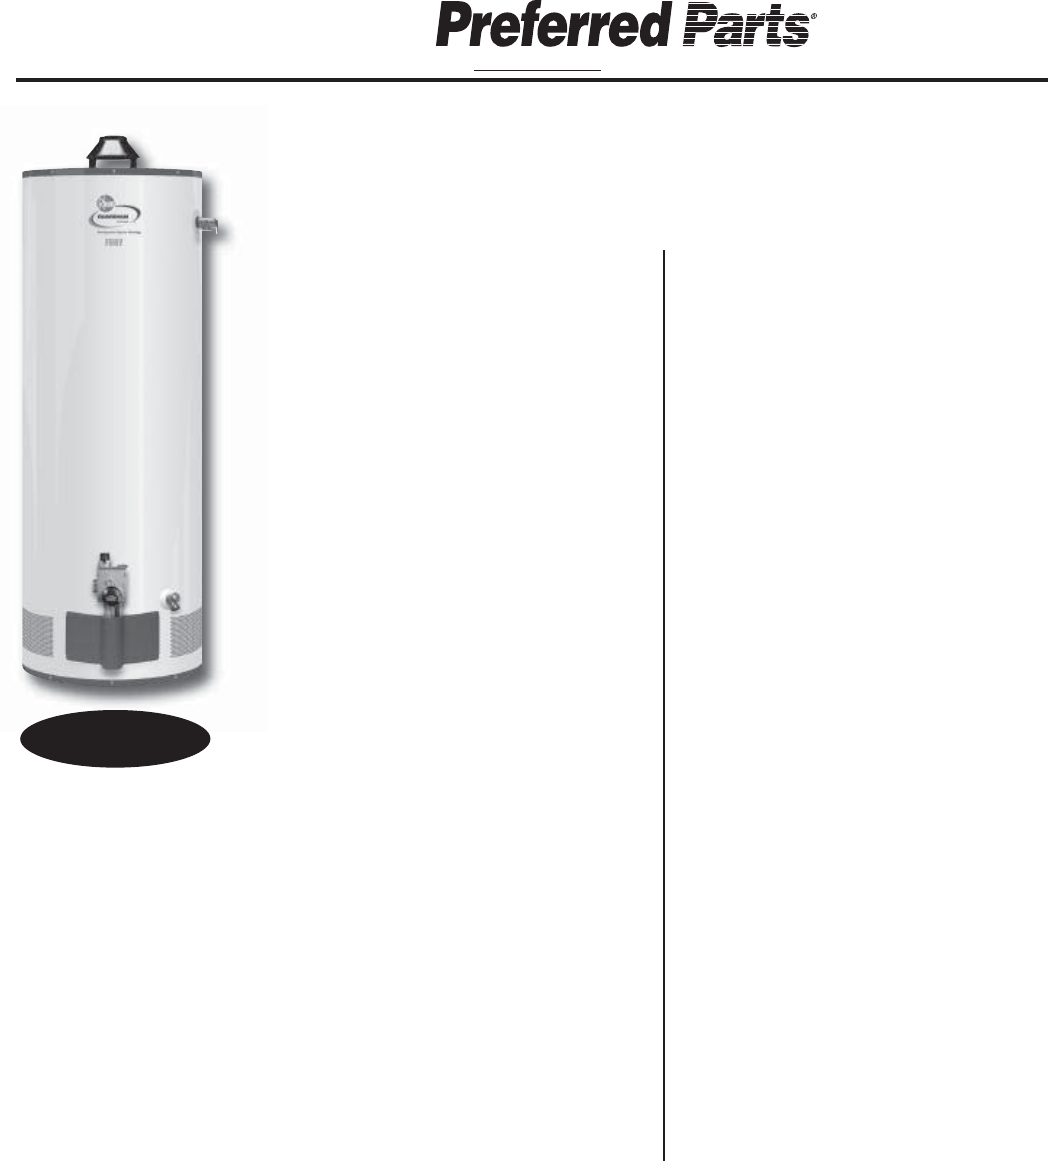 Rheem Water Heater parts catalog on